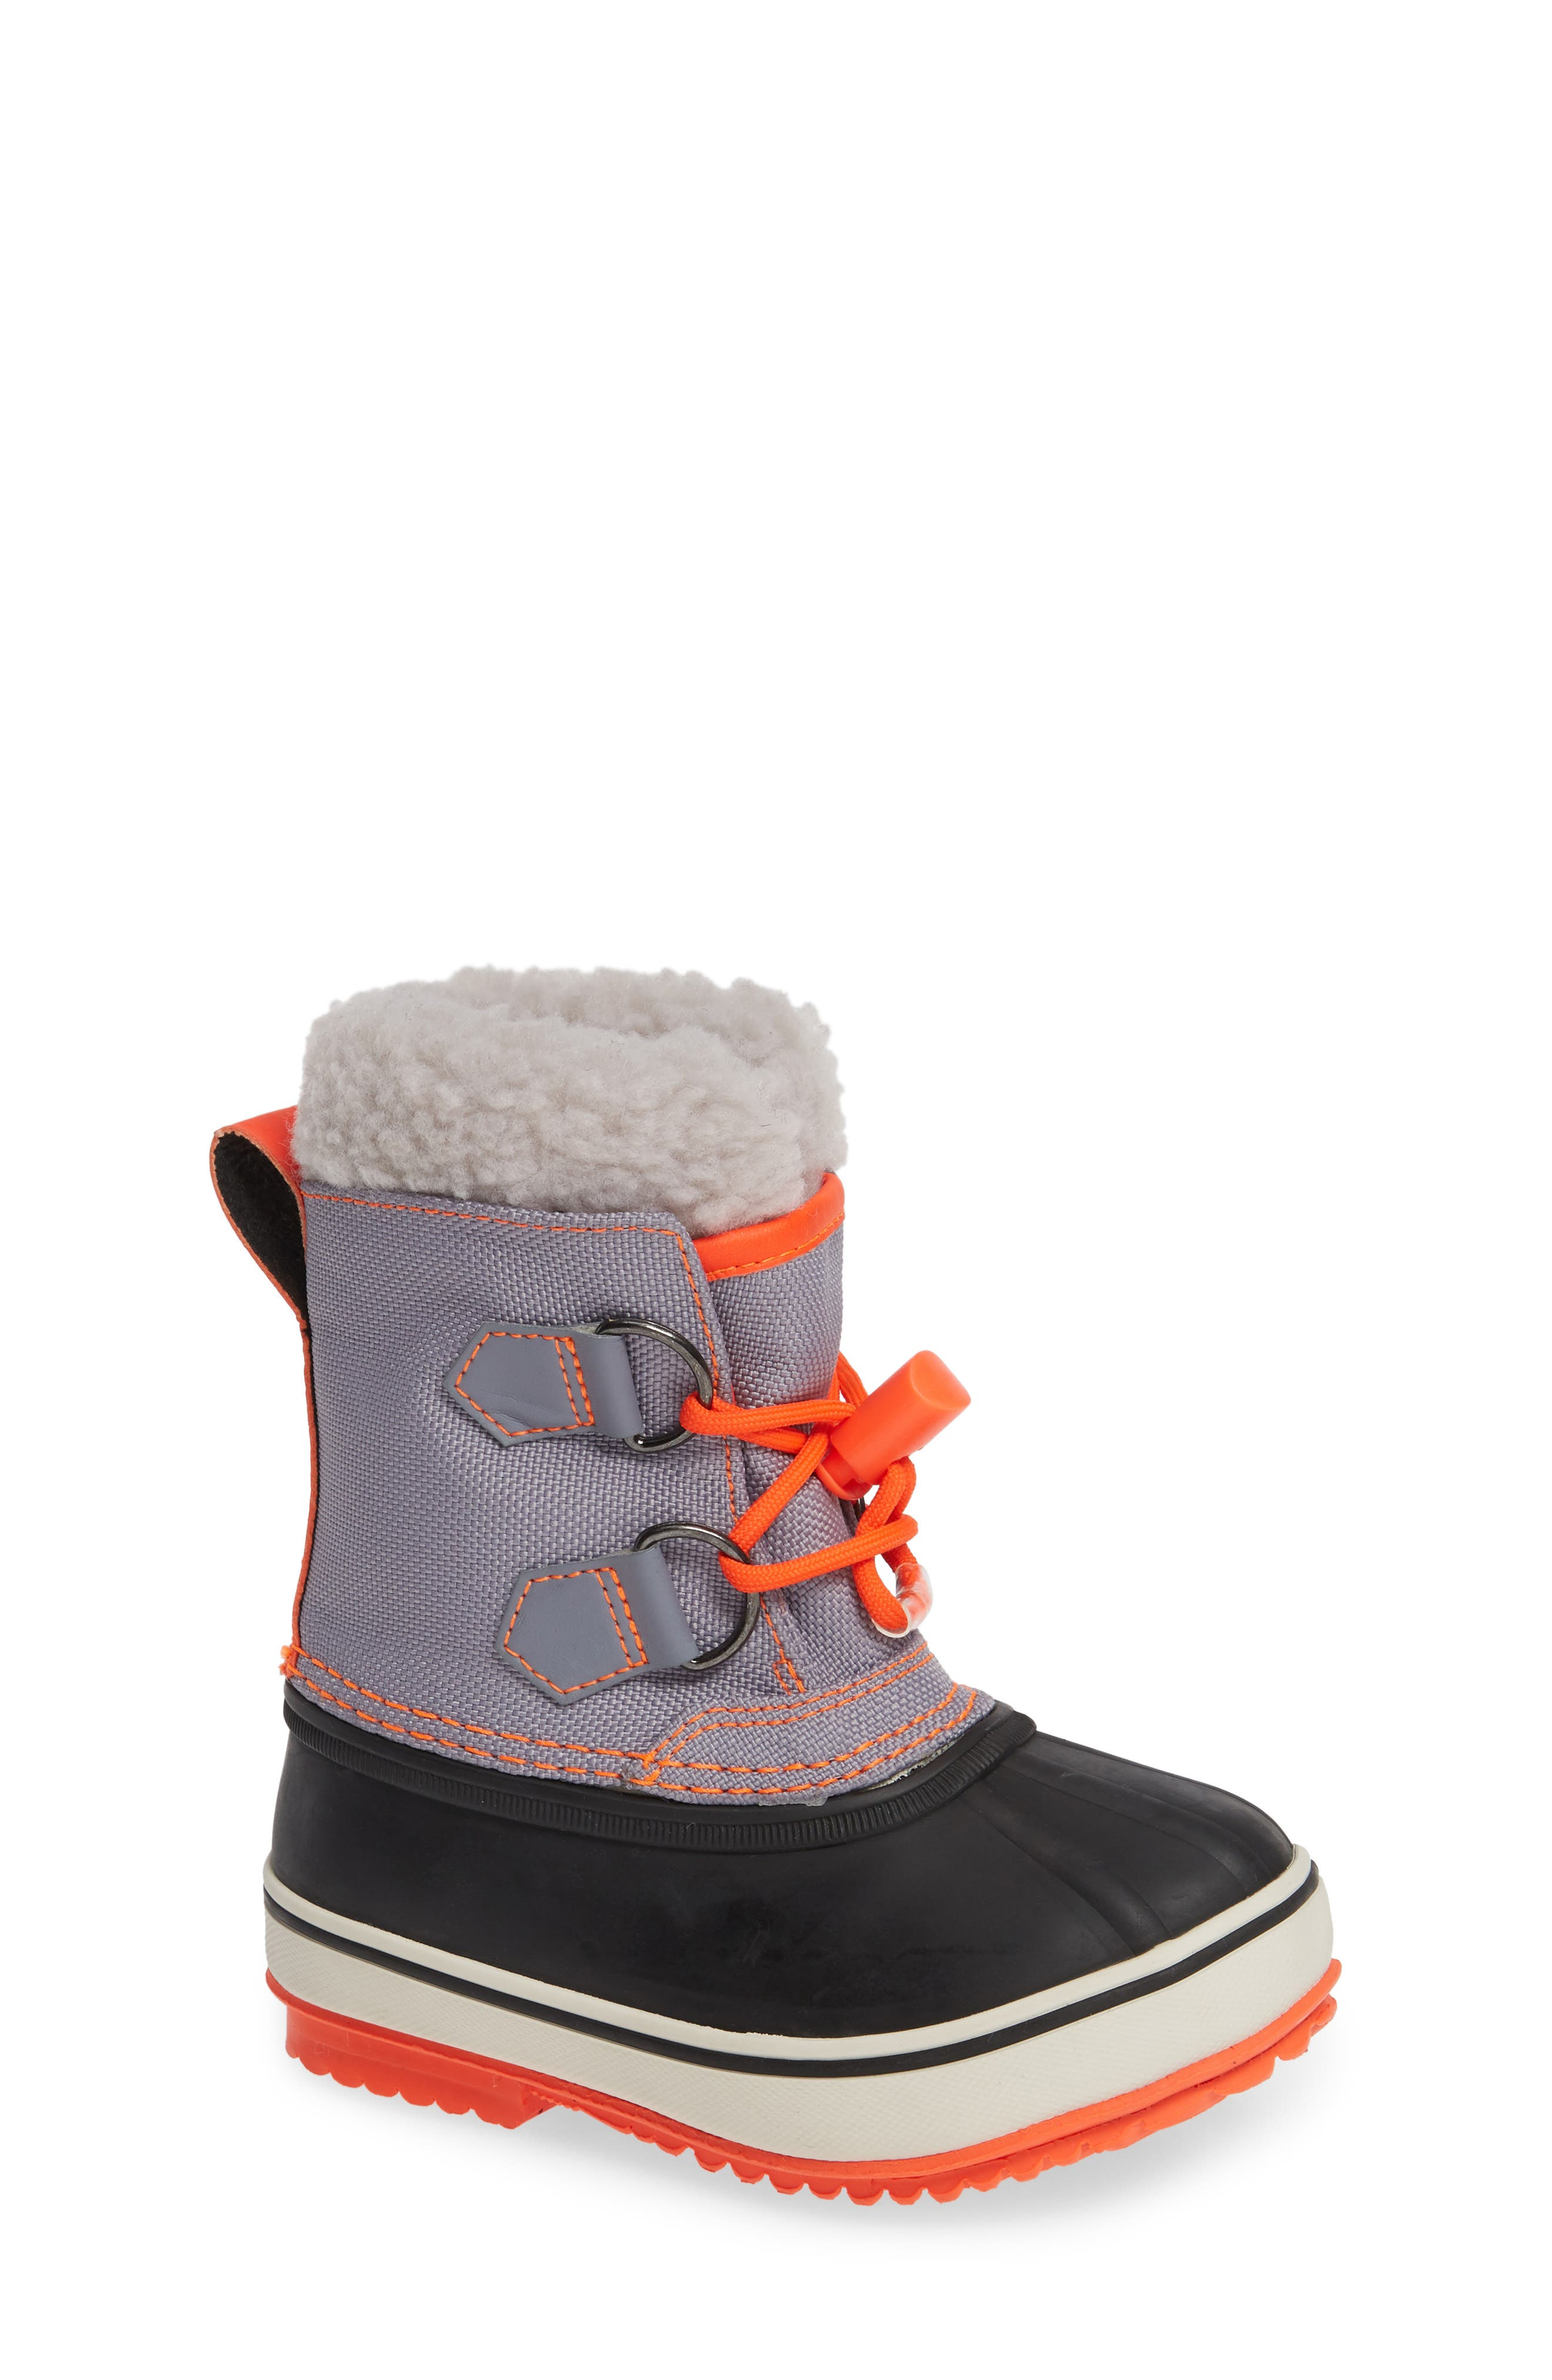 Waterproof Snow Boots,                         Main,                         color, STARBOARD BLUE